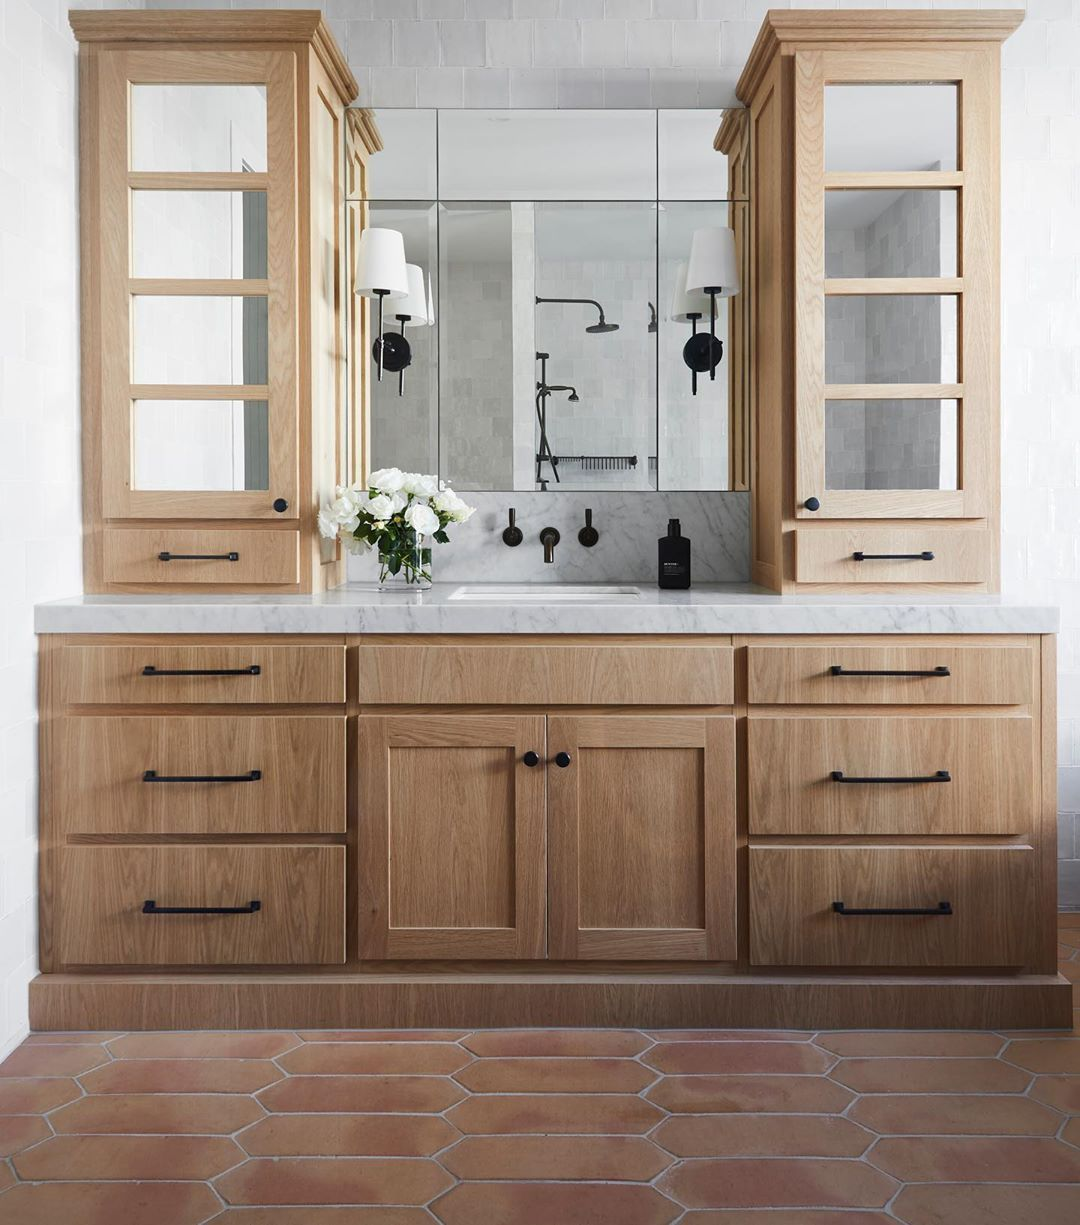 The ensuite joinery at Beechwood. We considered the storage